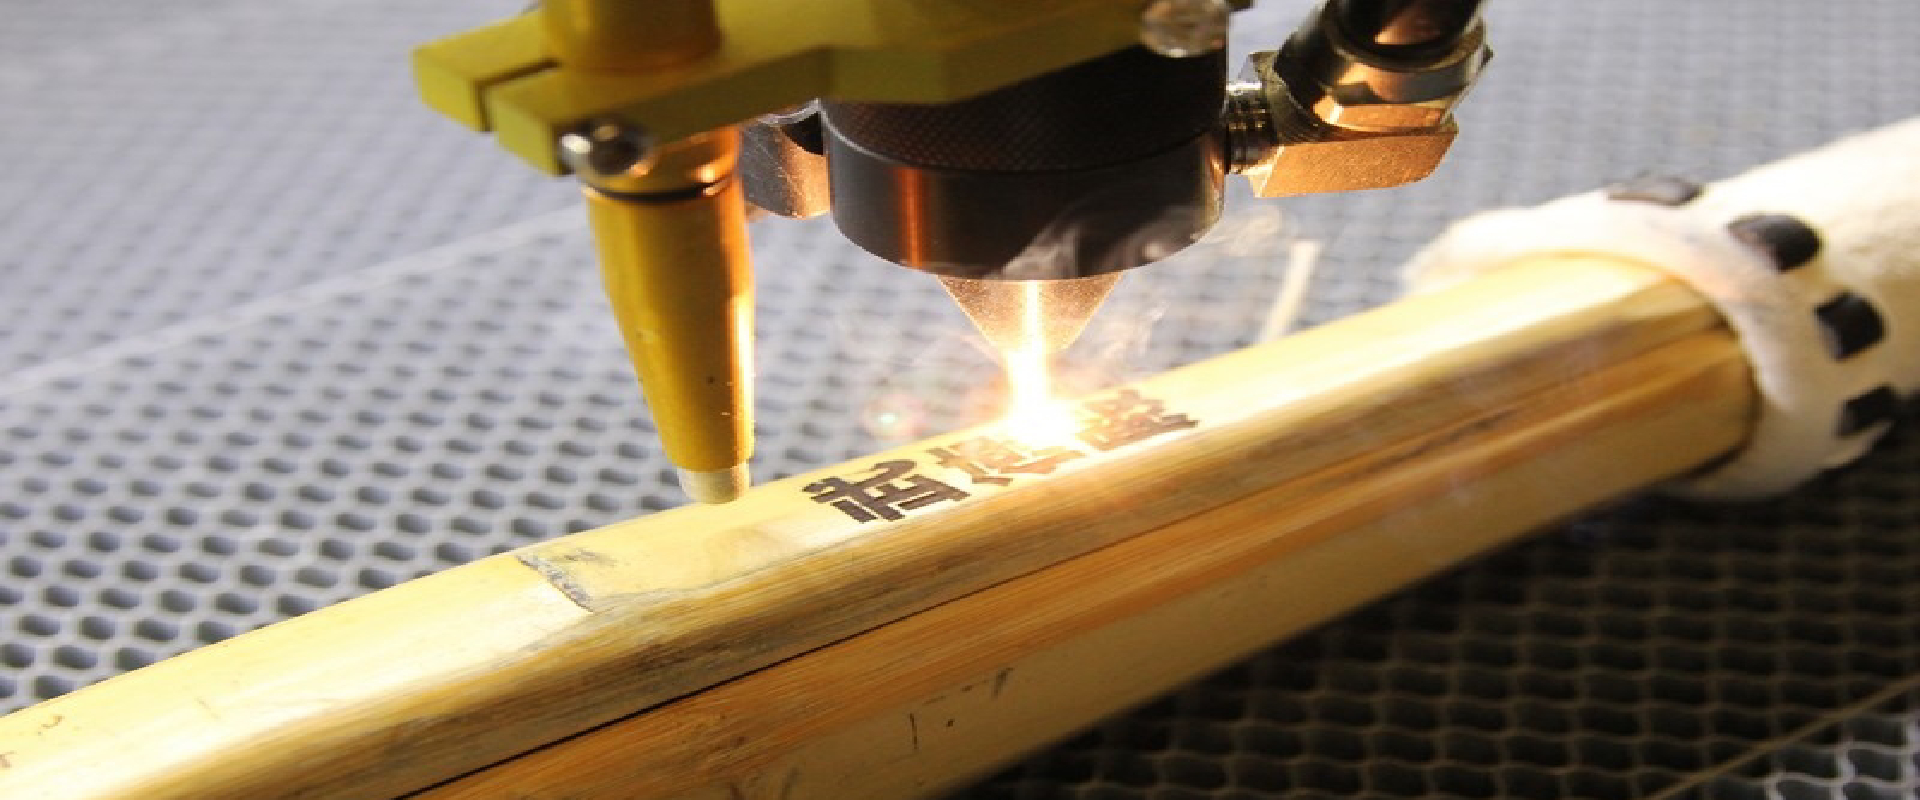 Laser Engraving Service In Sector 13 Gurgaon